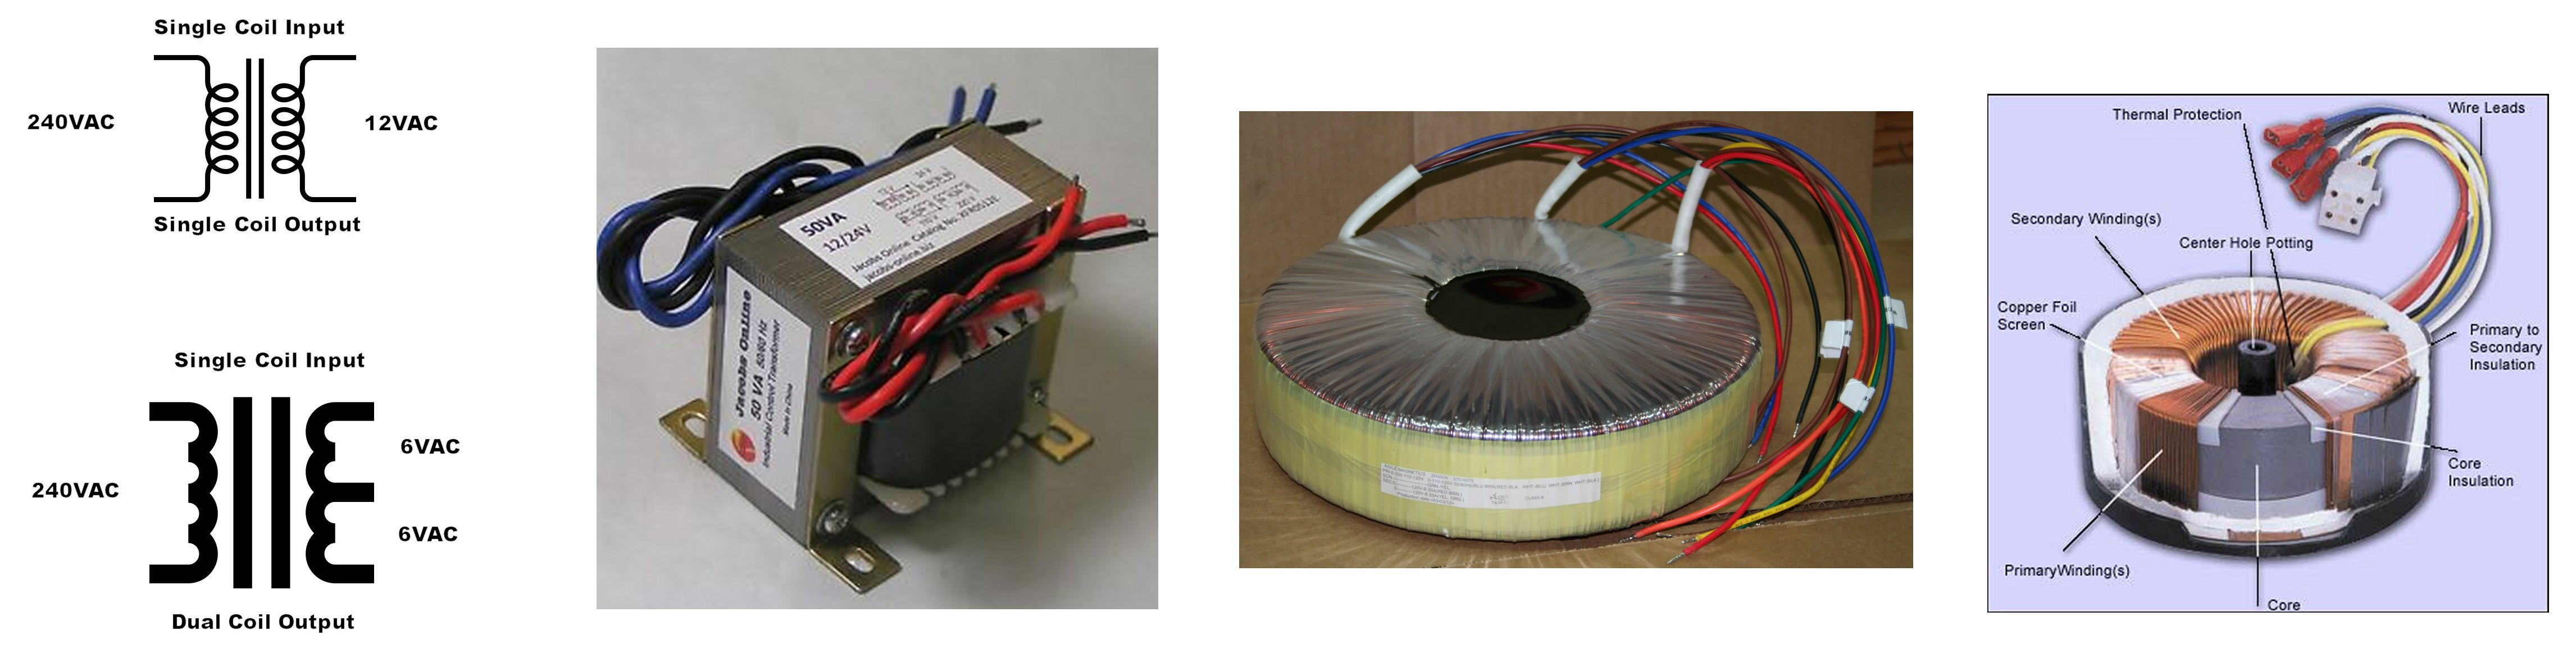 Linear Acdc Power Supply With Transformer Rectifier Smoother And Toroidal Transformers